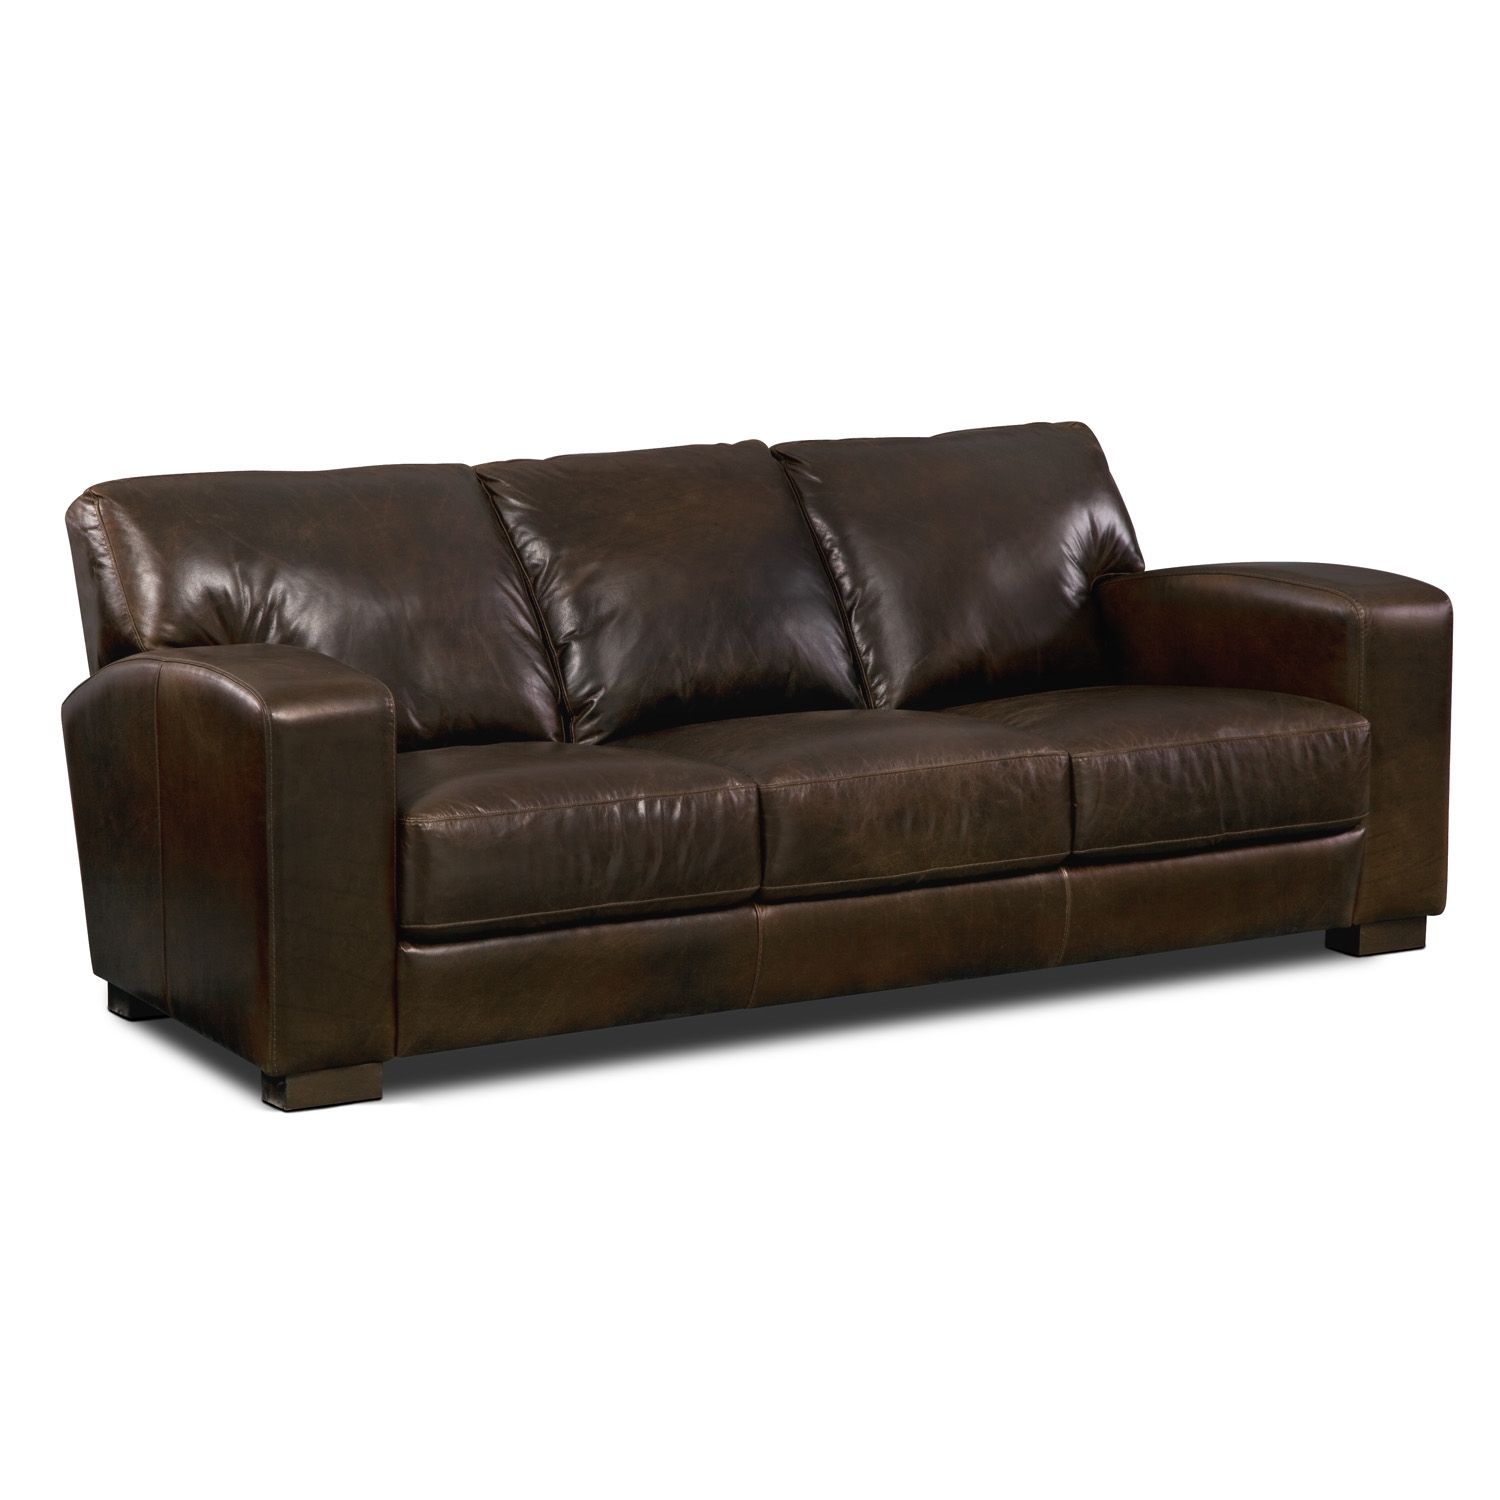 American Signature Furniture Grayson Leather Sofa